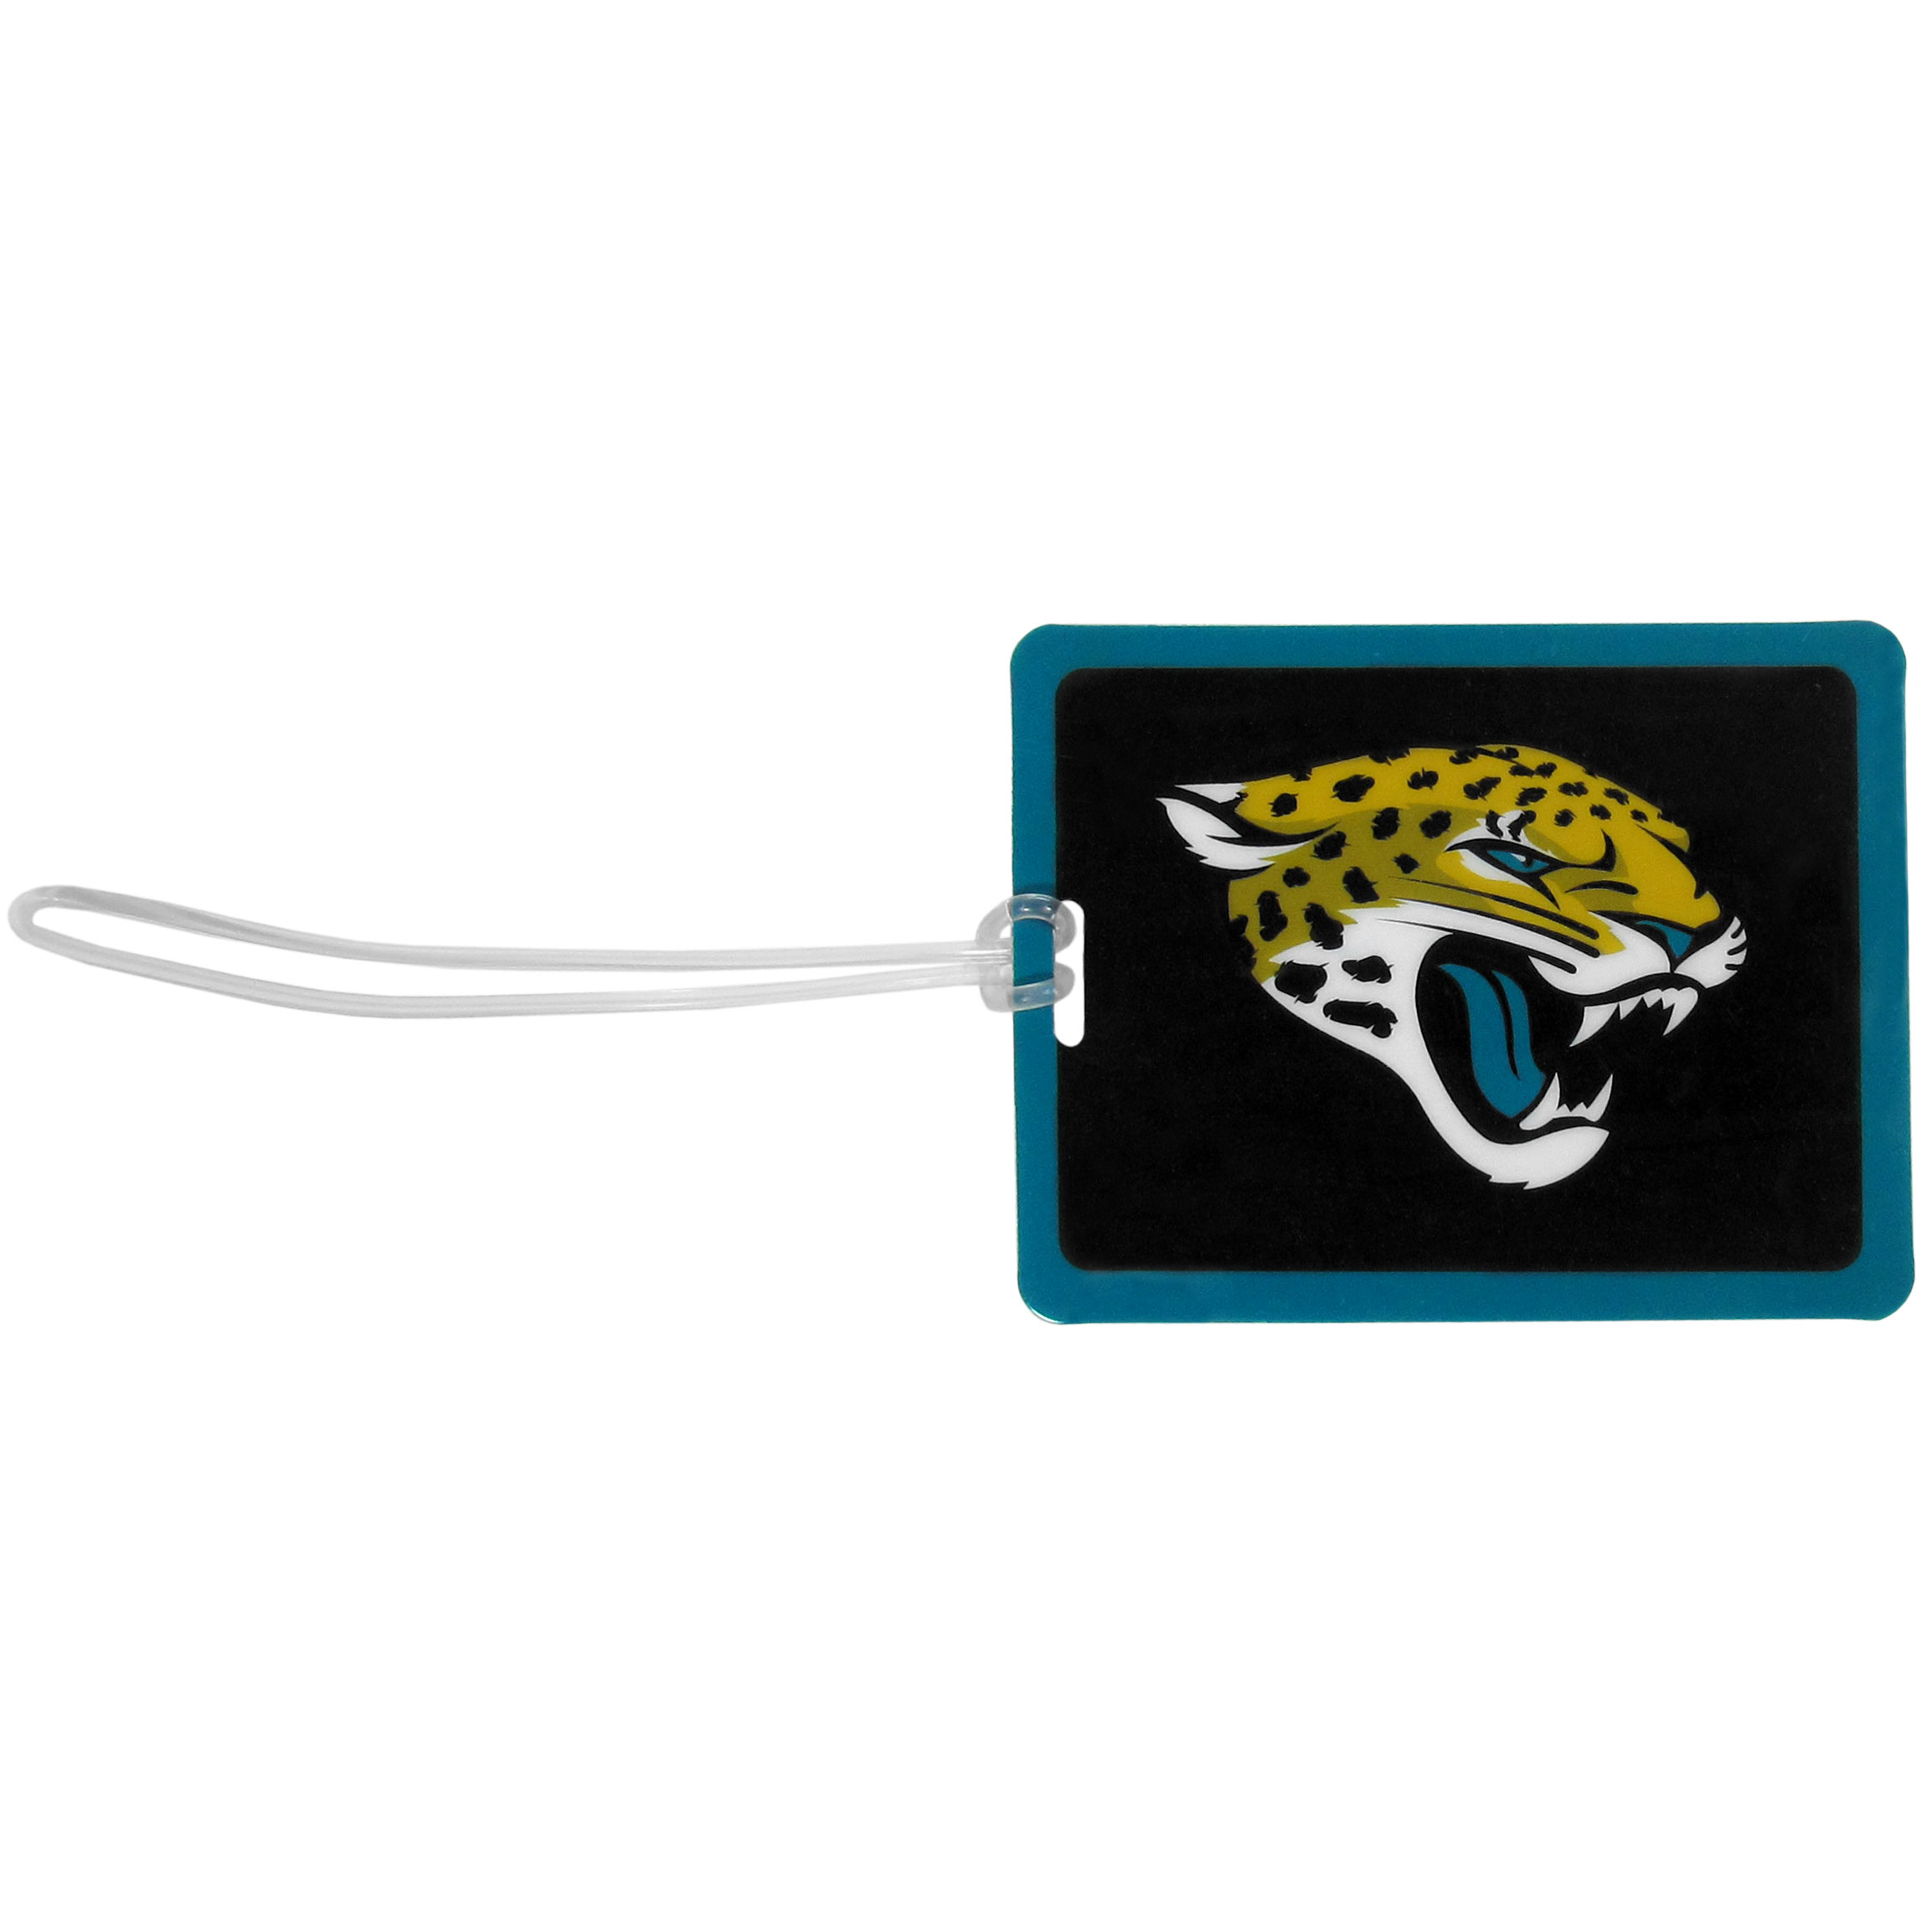 Jacksonville Jaguars Vinyl Luggage Tag - Tired of trying to spot your suitcase or bag in a sea of luggage? Try our large and colorful Jacksonville Jaguars luggage tag set. The tag is 4x3 inches and has a 5 inch cord to attach it easily to your bags, backpacks or luggage. The front of the tag features the team logo in a bright, team colored background and you can write you name, address and phone number on the back of the tag.